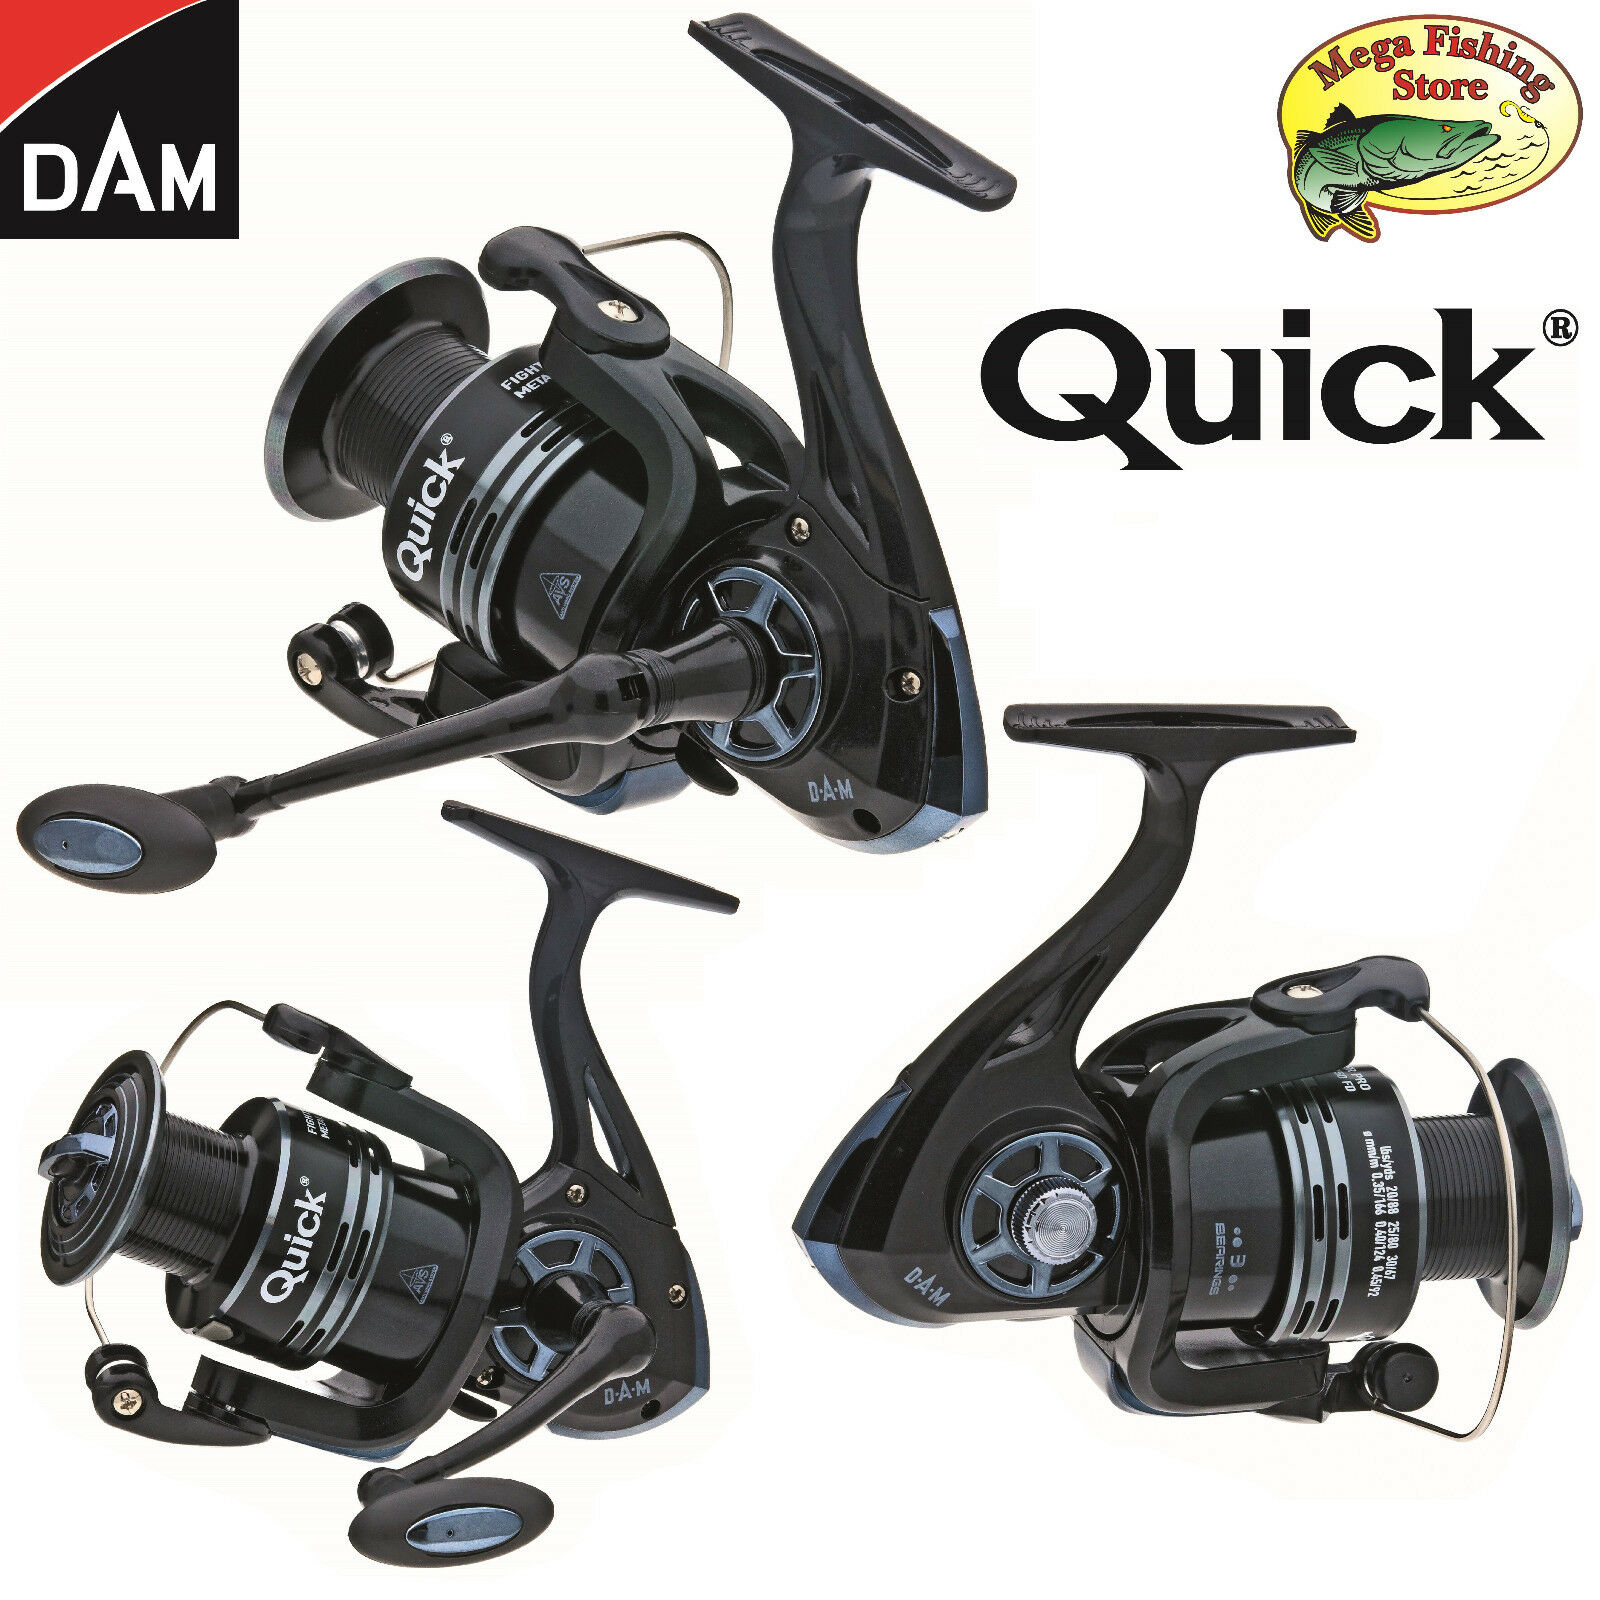 DAM QUICK Fighter Pro Metall Spinrolle - Angelrolle / Spin Rolle - 2000 bis 6000